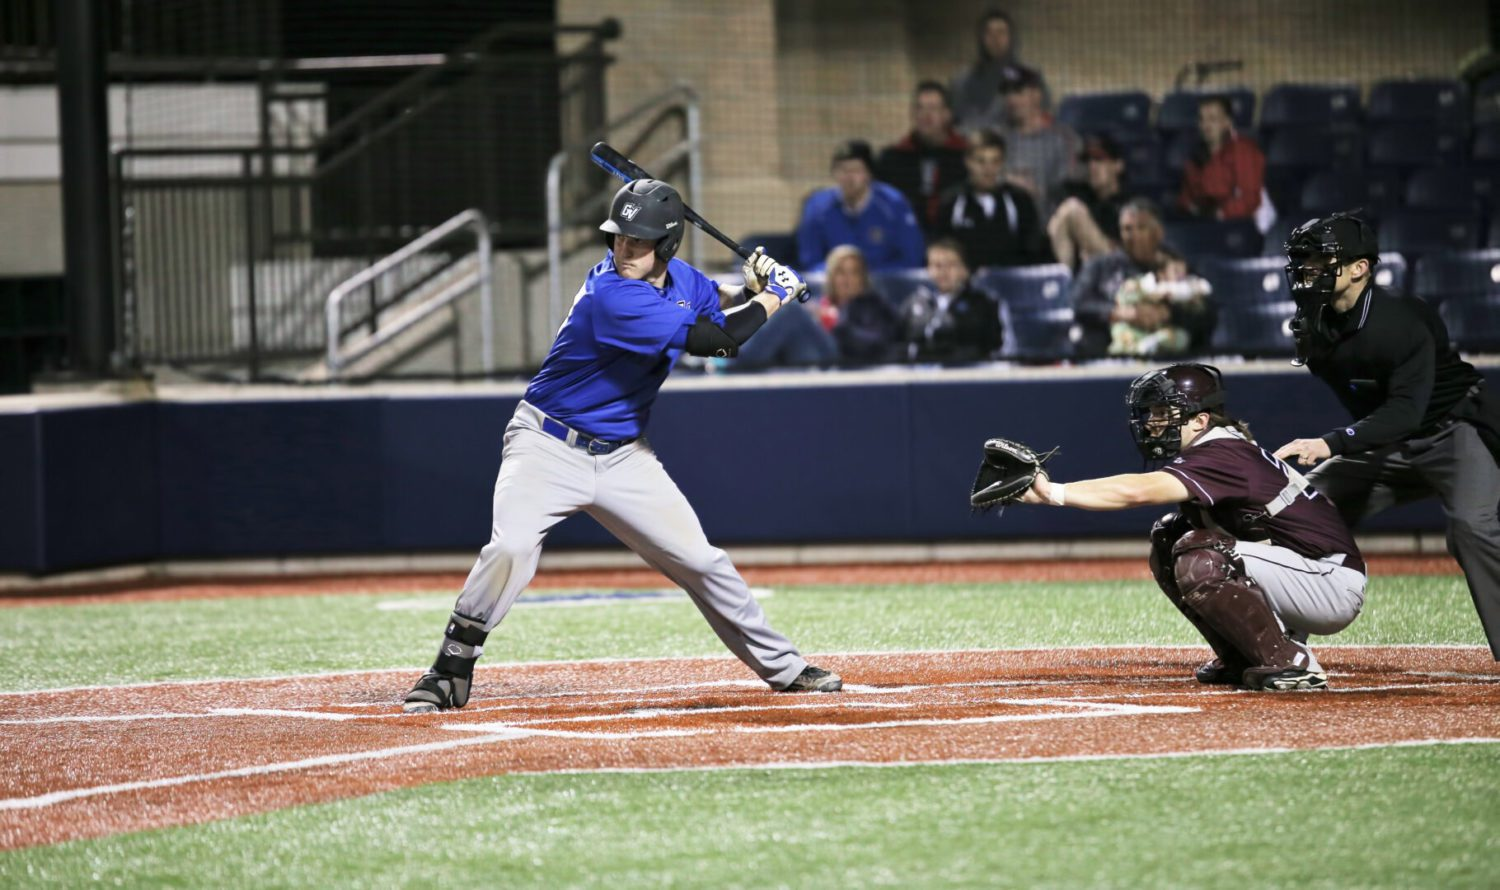 Jamie Potts, drafted by Texas Rangers, may have to give up last year of college football to play pro baseball